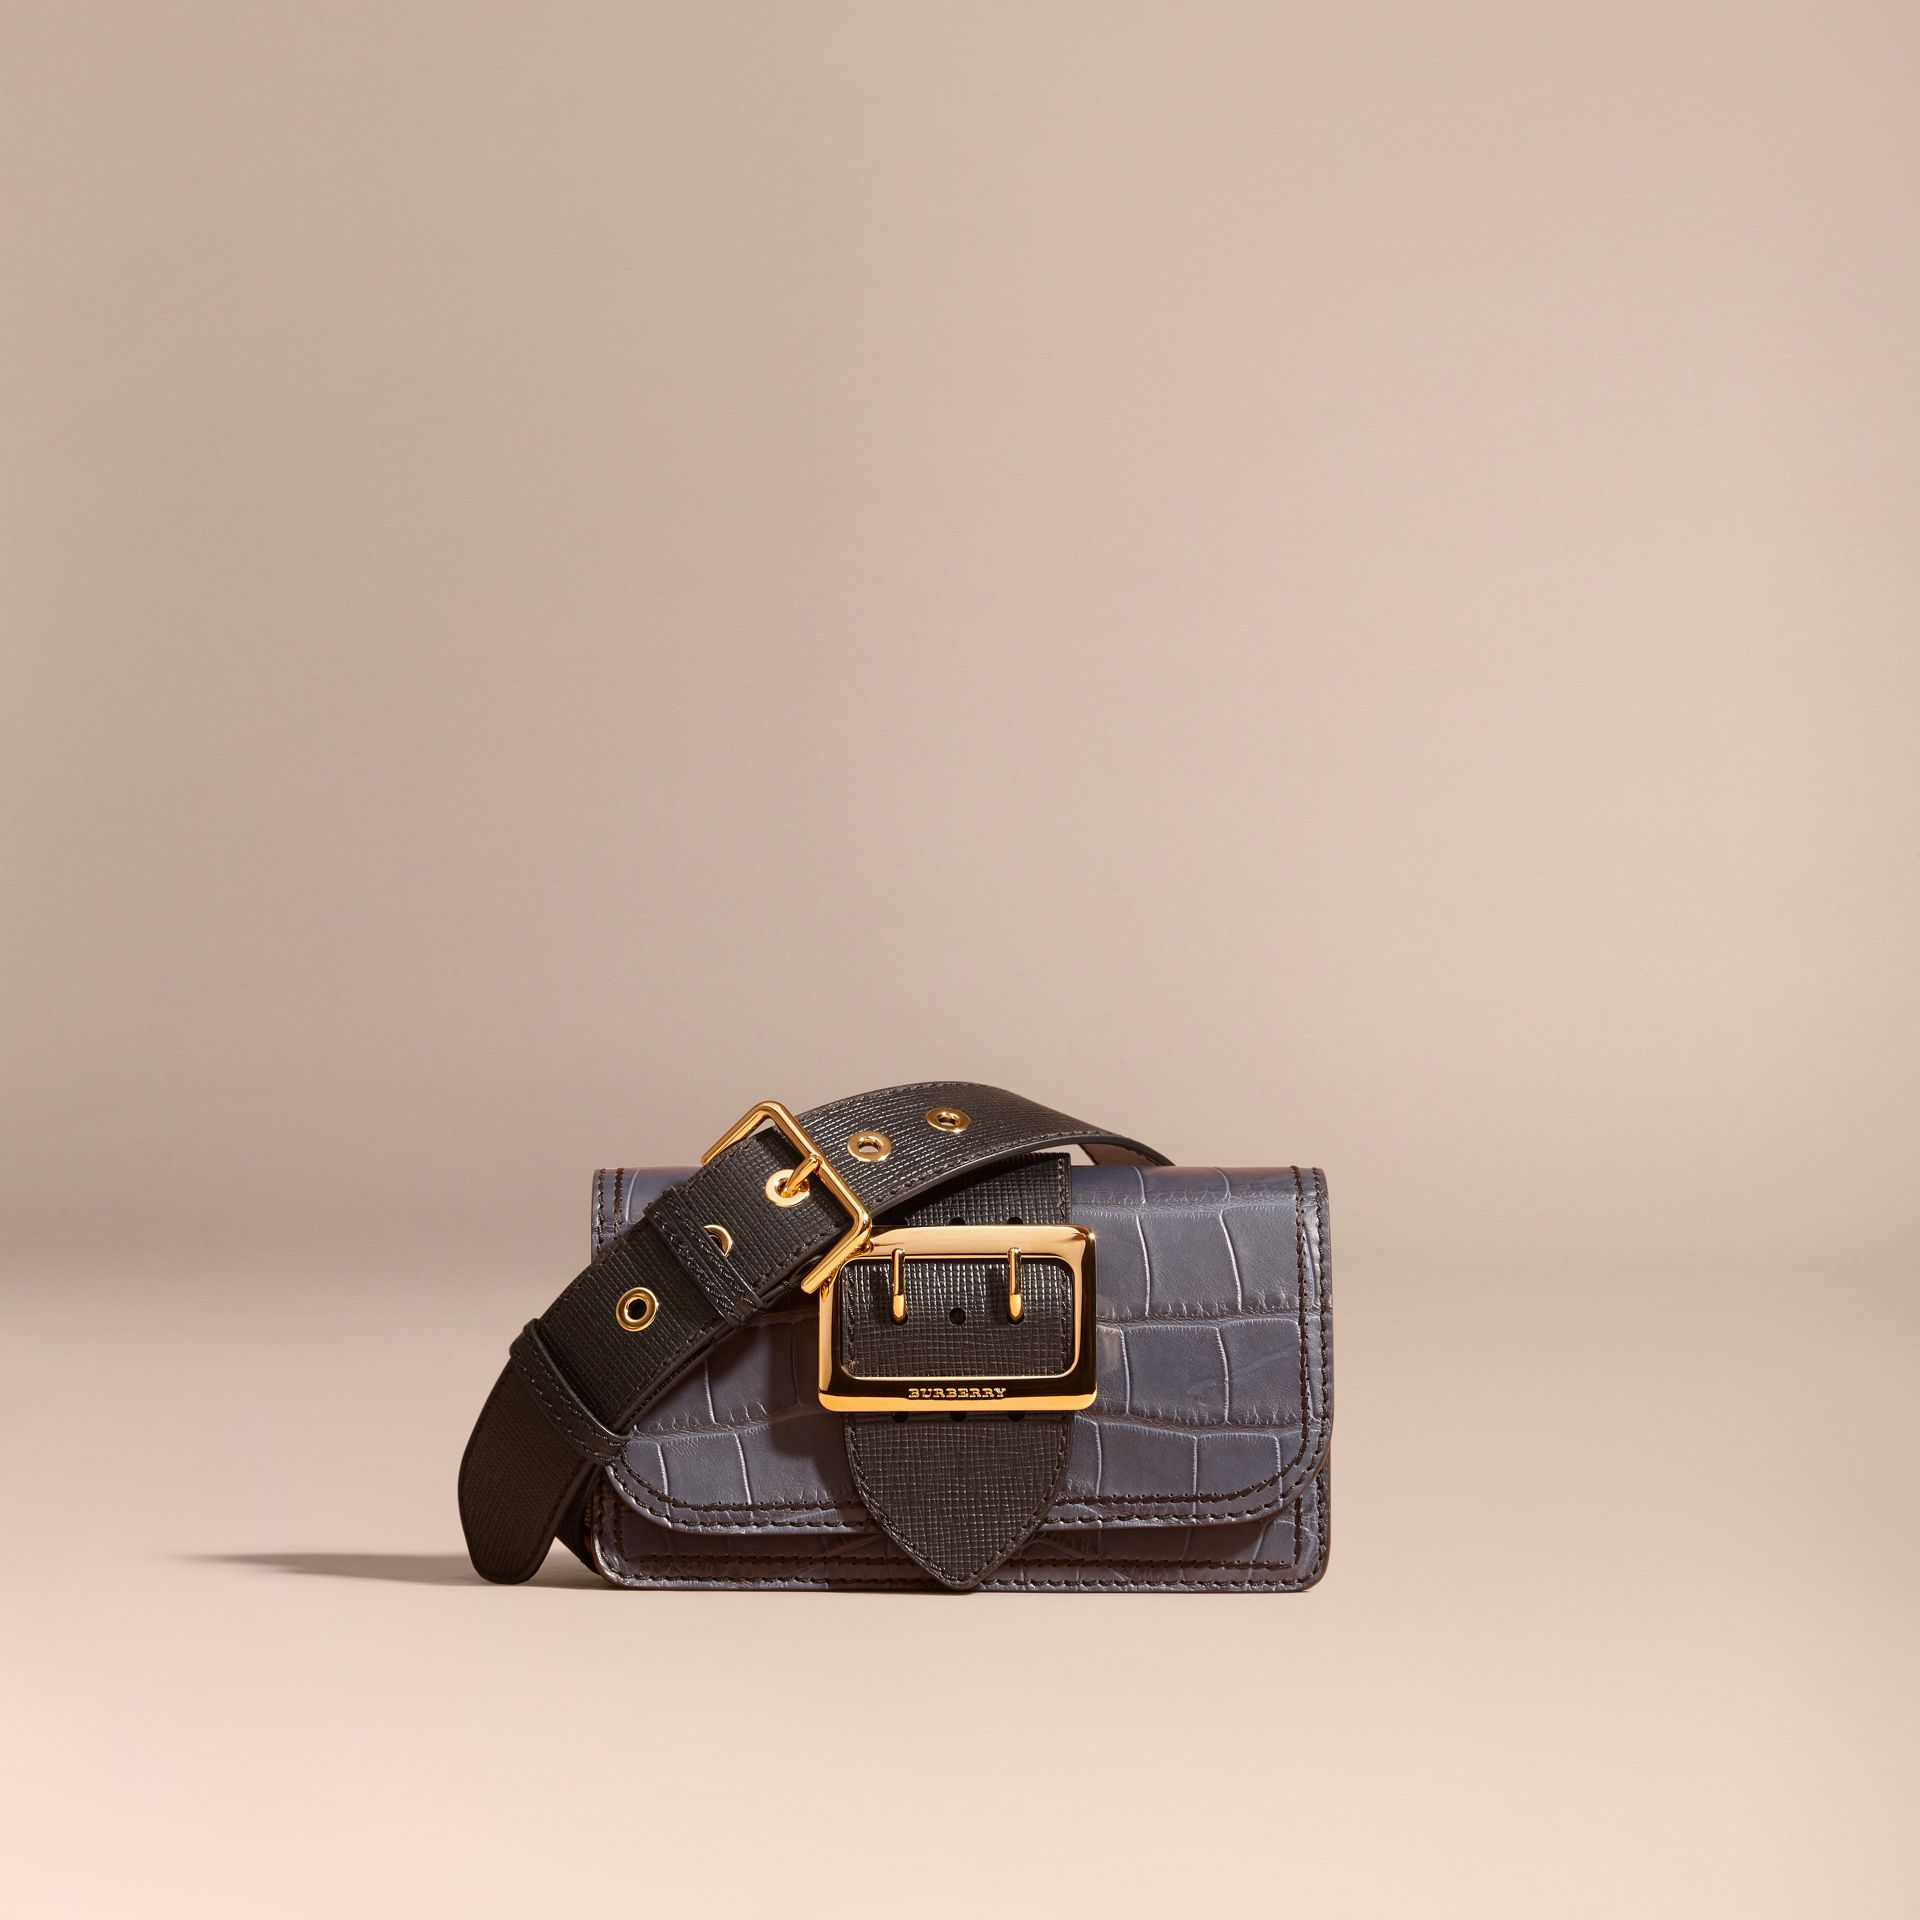 The Small Buckle Bag in Alligator and Leather in Navy / Black - Women | Burberry Canada - gallery image 9